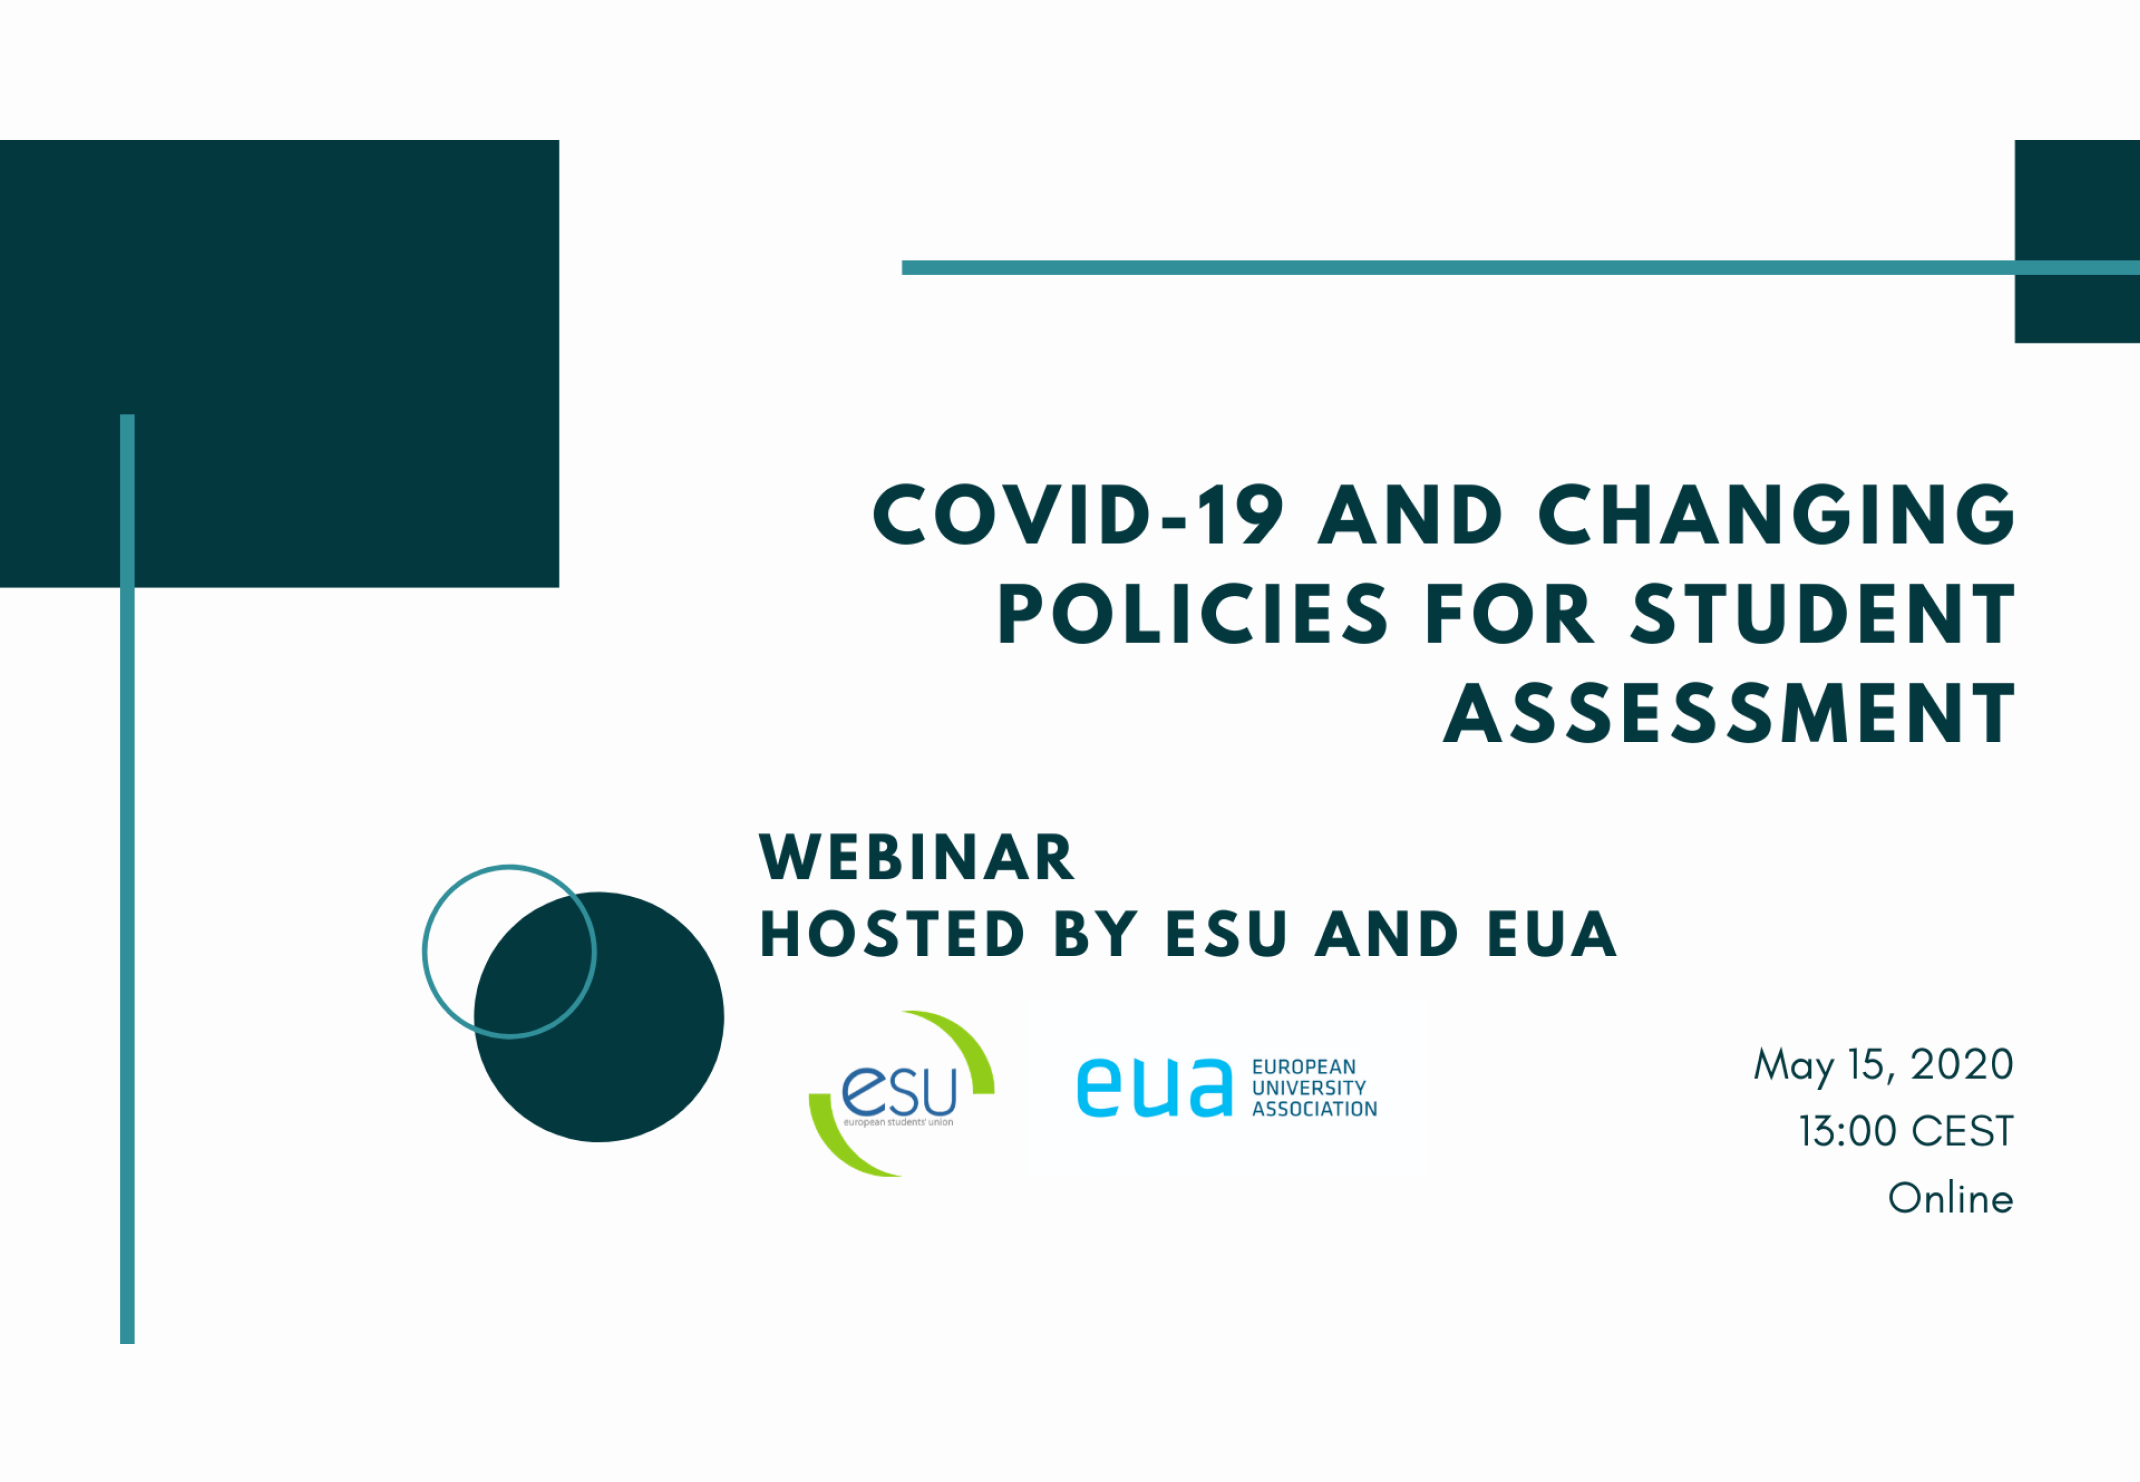 Webinar: COVID-19 and changing policies for student assessment